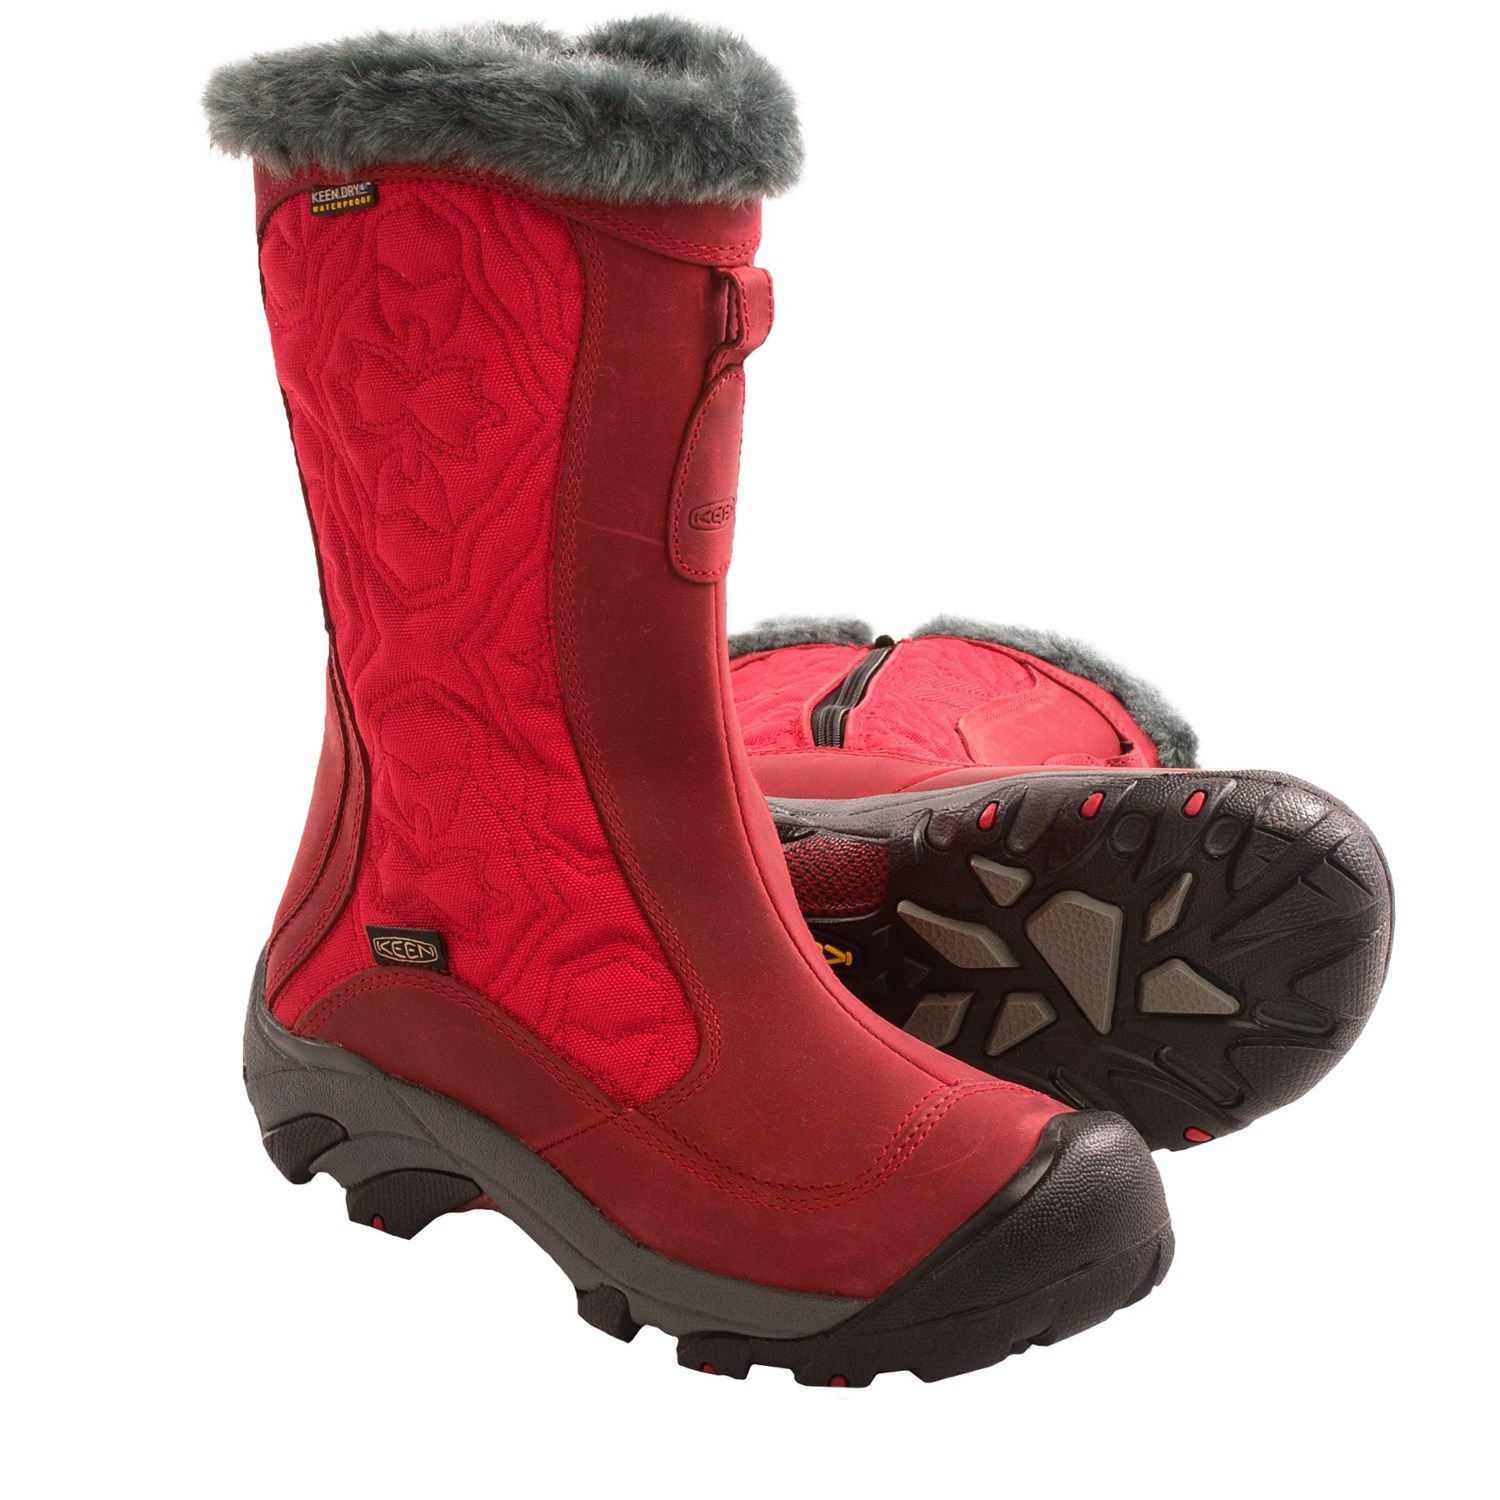 keen betty ii snow boots waterproof insulated for women in tango red gargoyle. Black Bedroom Furniture Sets. Home Design Ideas